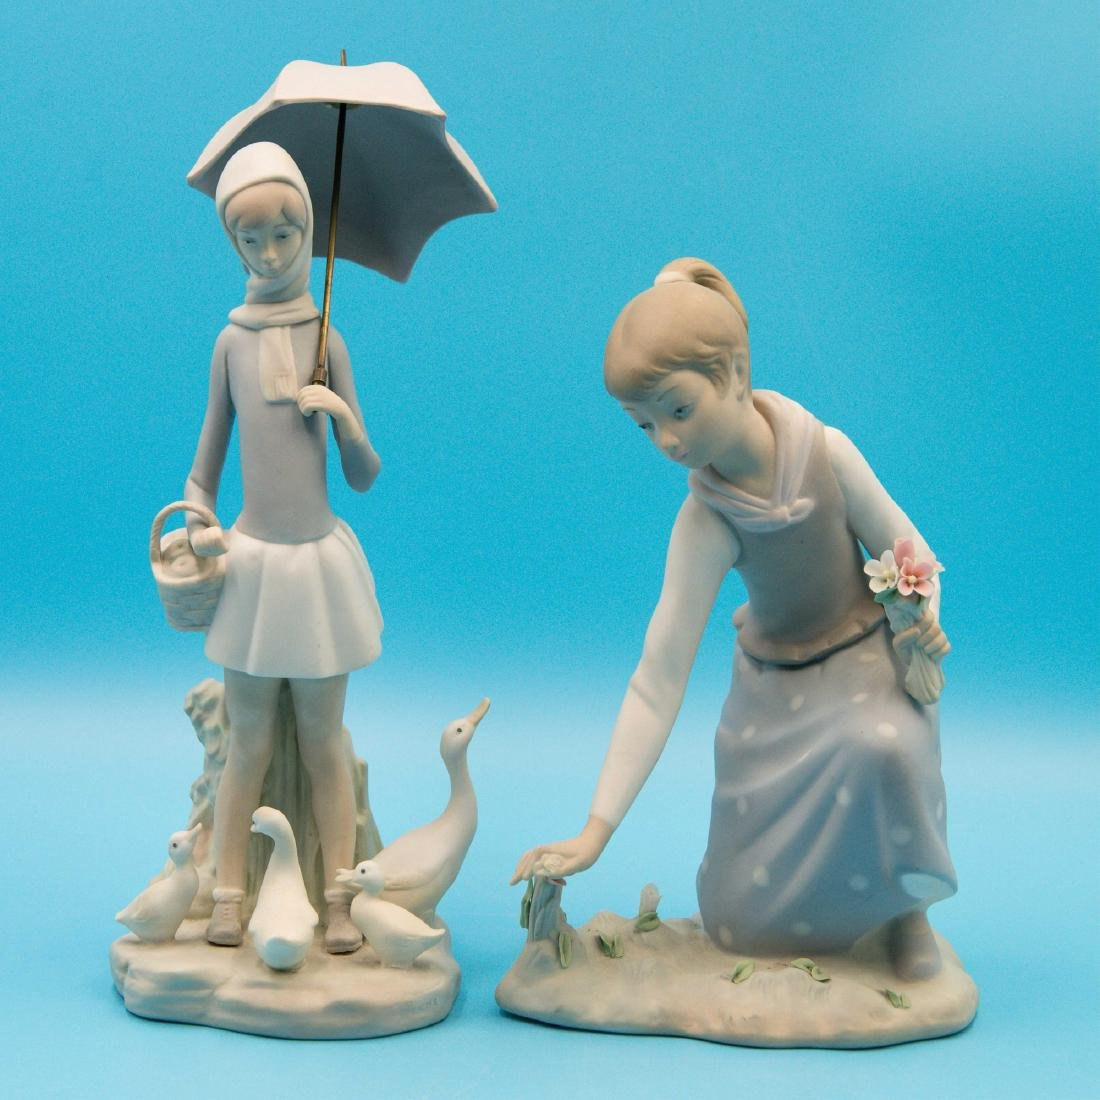 LLADRO GIRL GATHERS FLOWERS AND GIRL WITH UMBRELLA